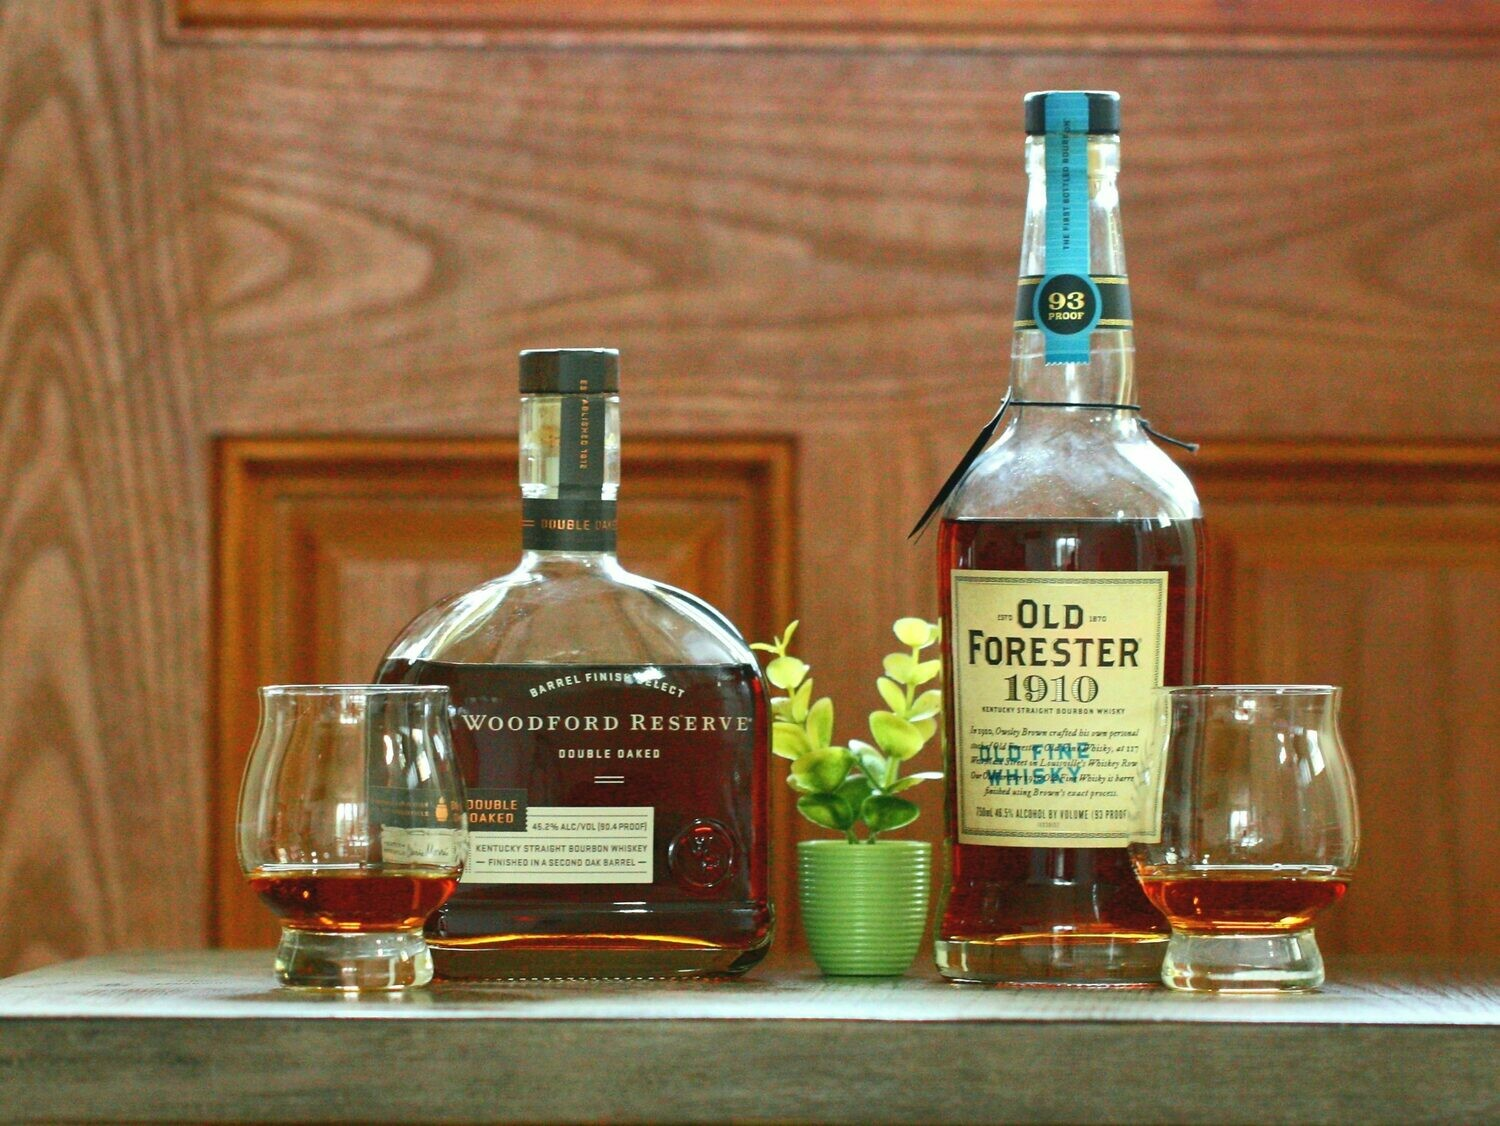 Conductor Club: Derby Days Old Forester & Woodford Reserve Tasting Experience - 4/29/21